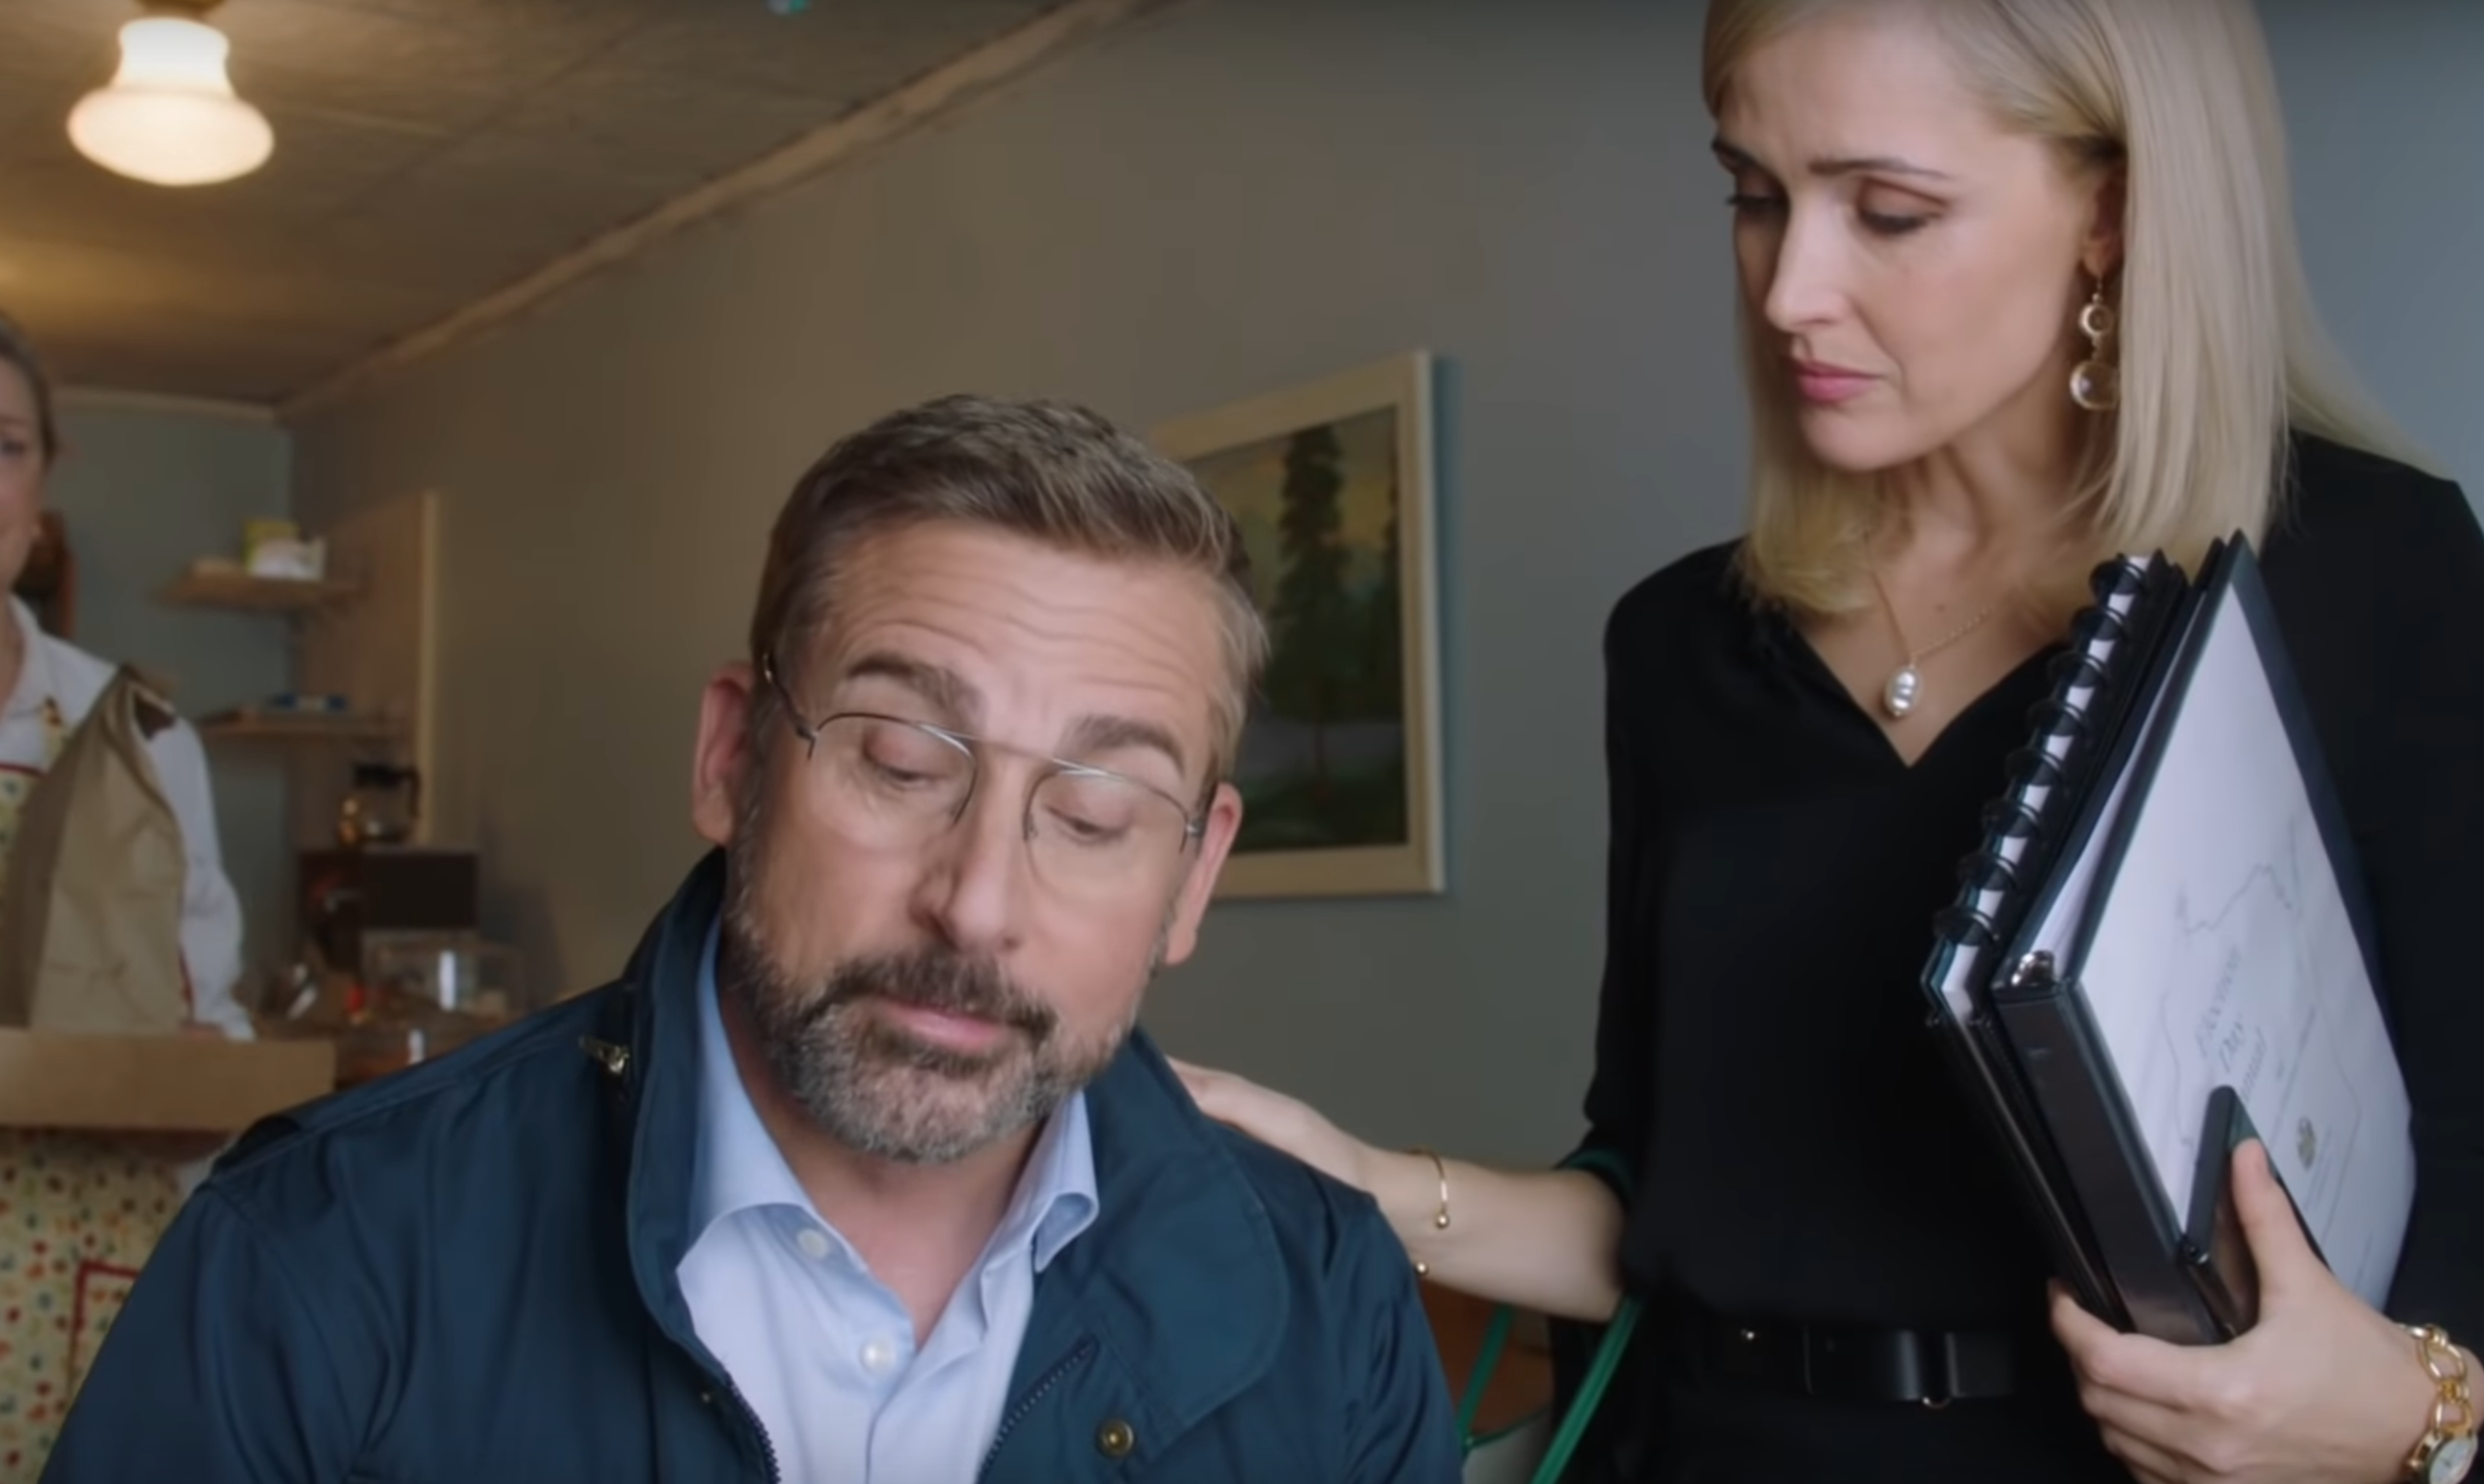 Jon Stewart's tireless trailer in Steve Carell, Rose Byrne clash politics